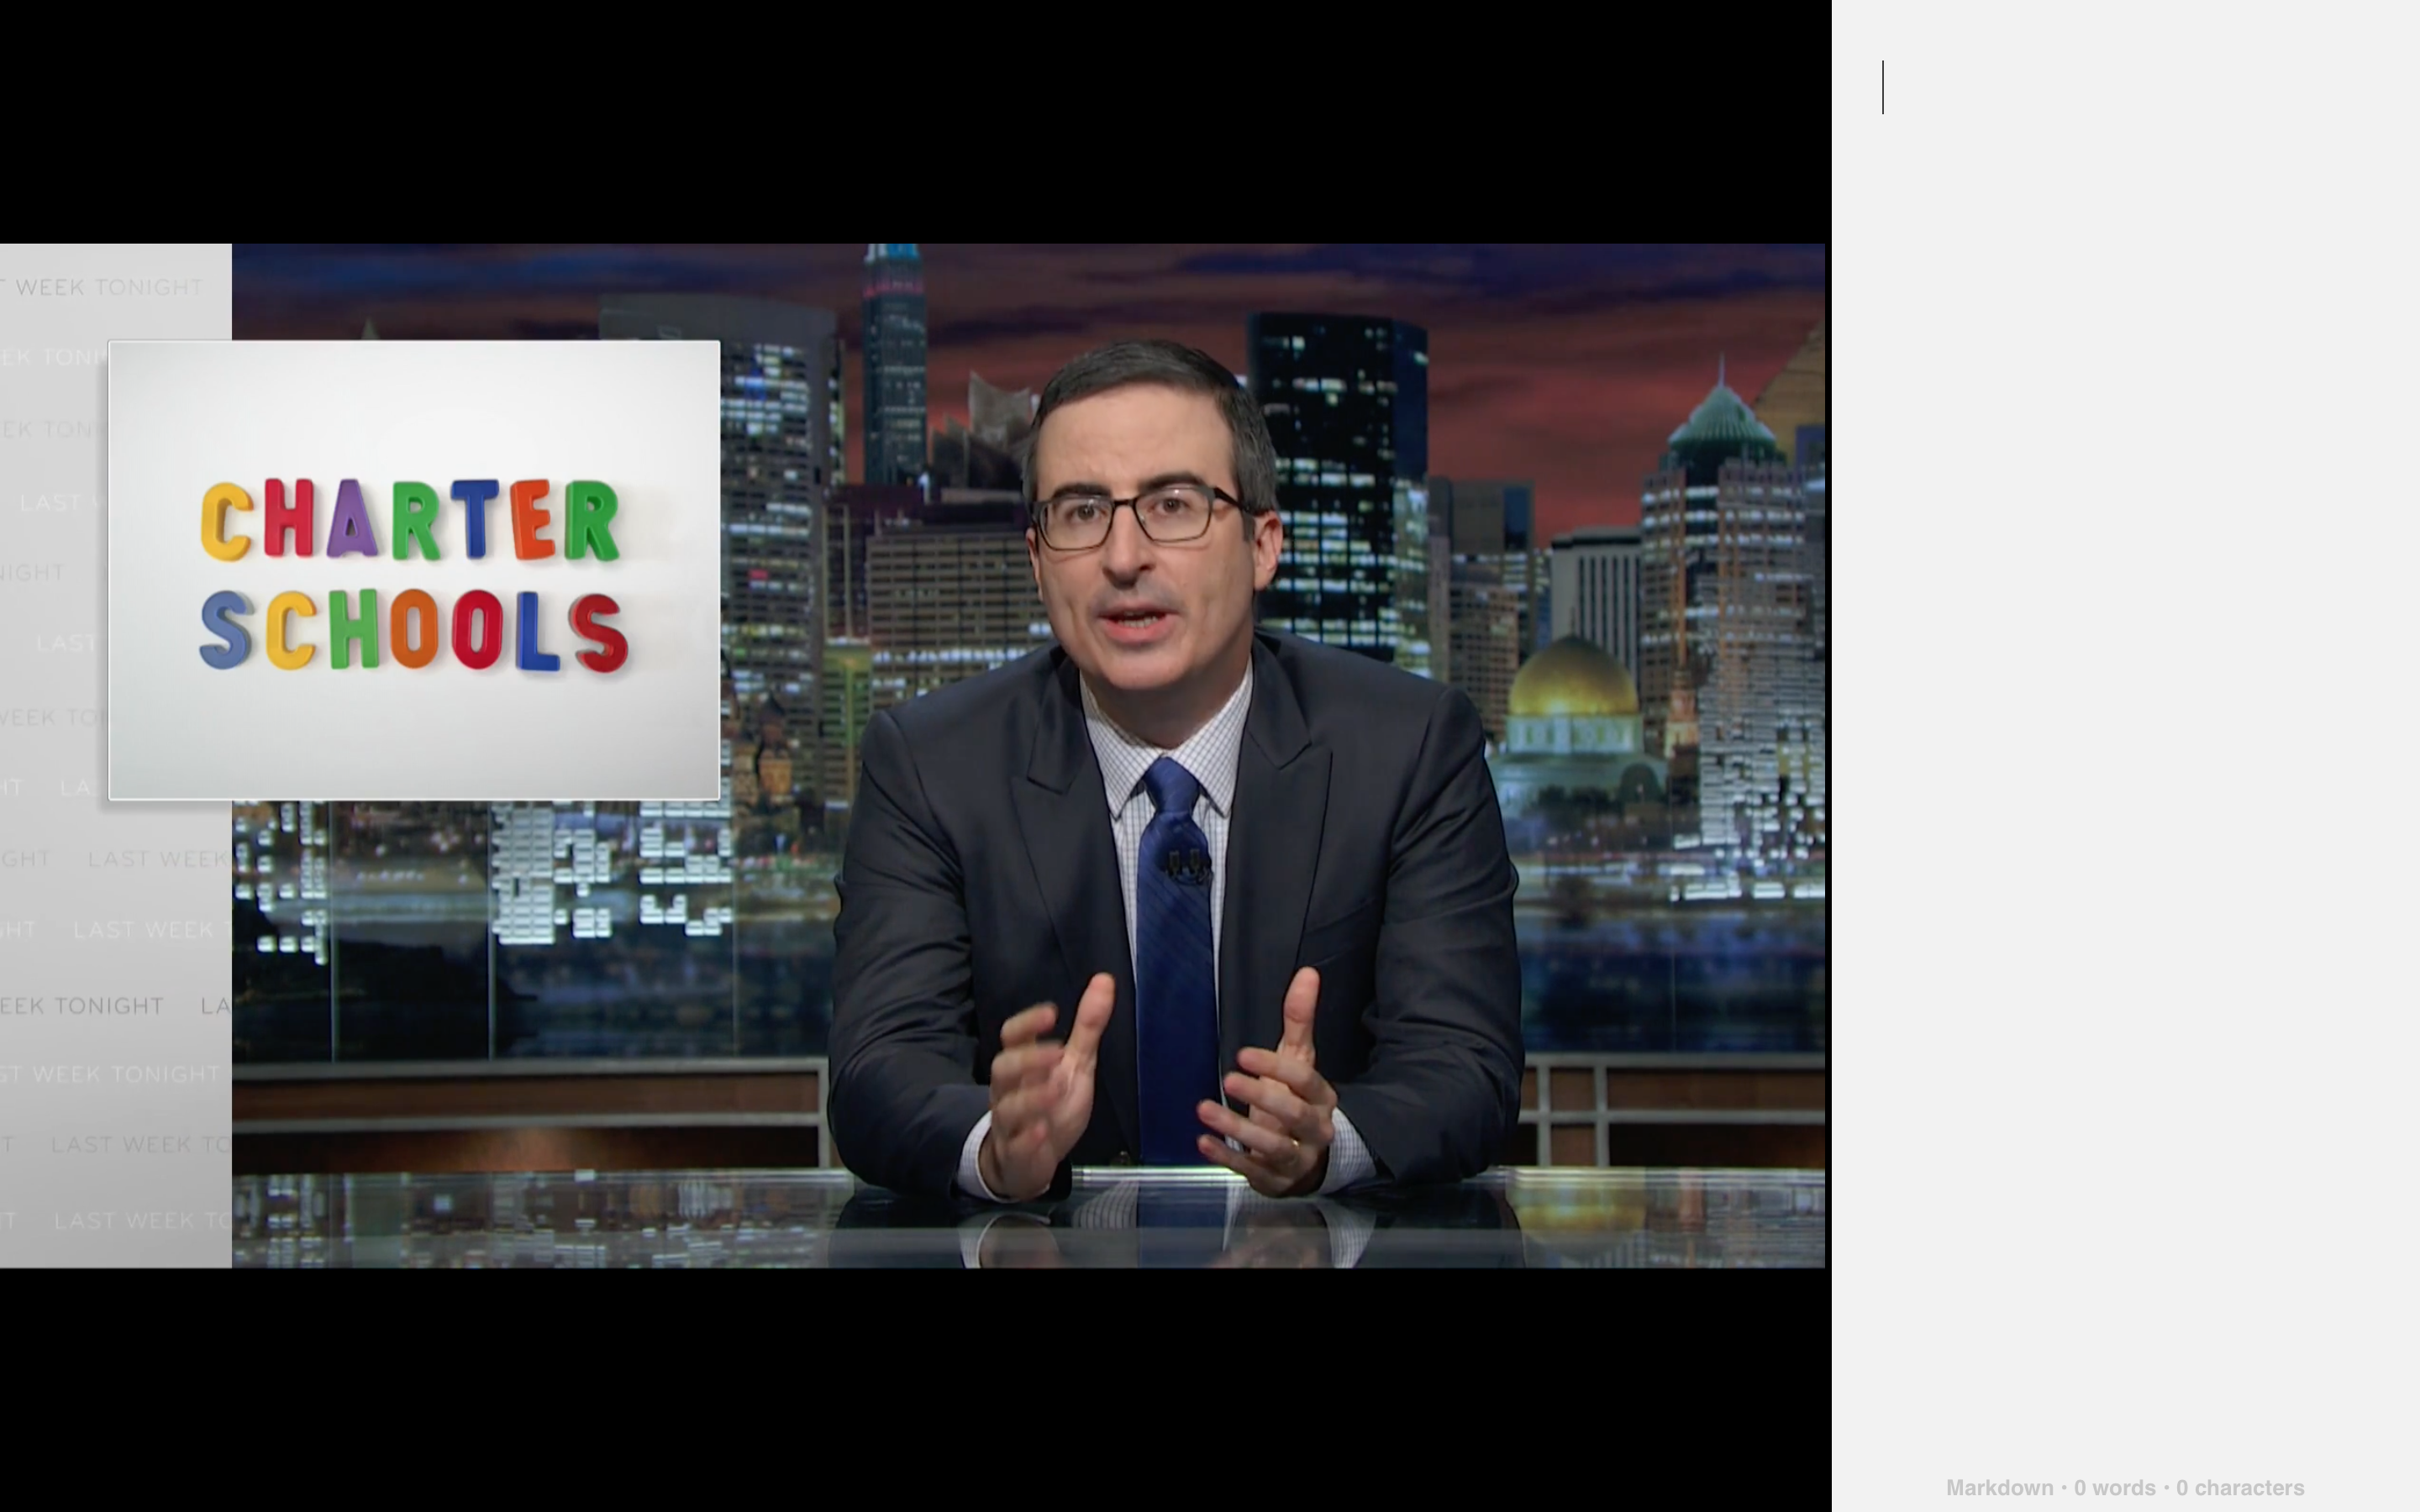 John Oliver to Donald Trump: 'Drop out'